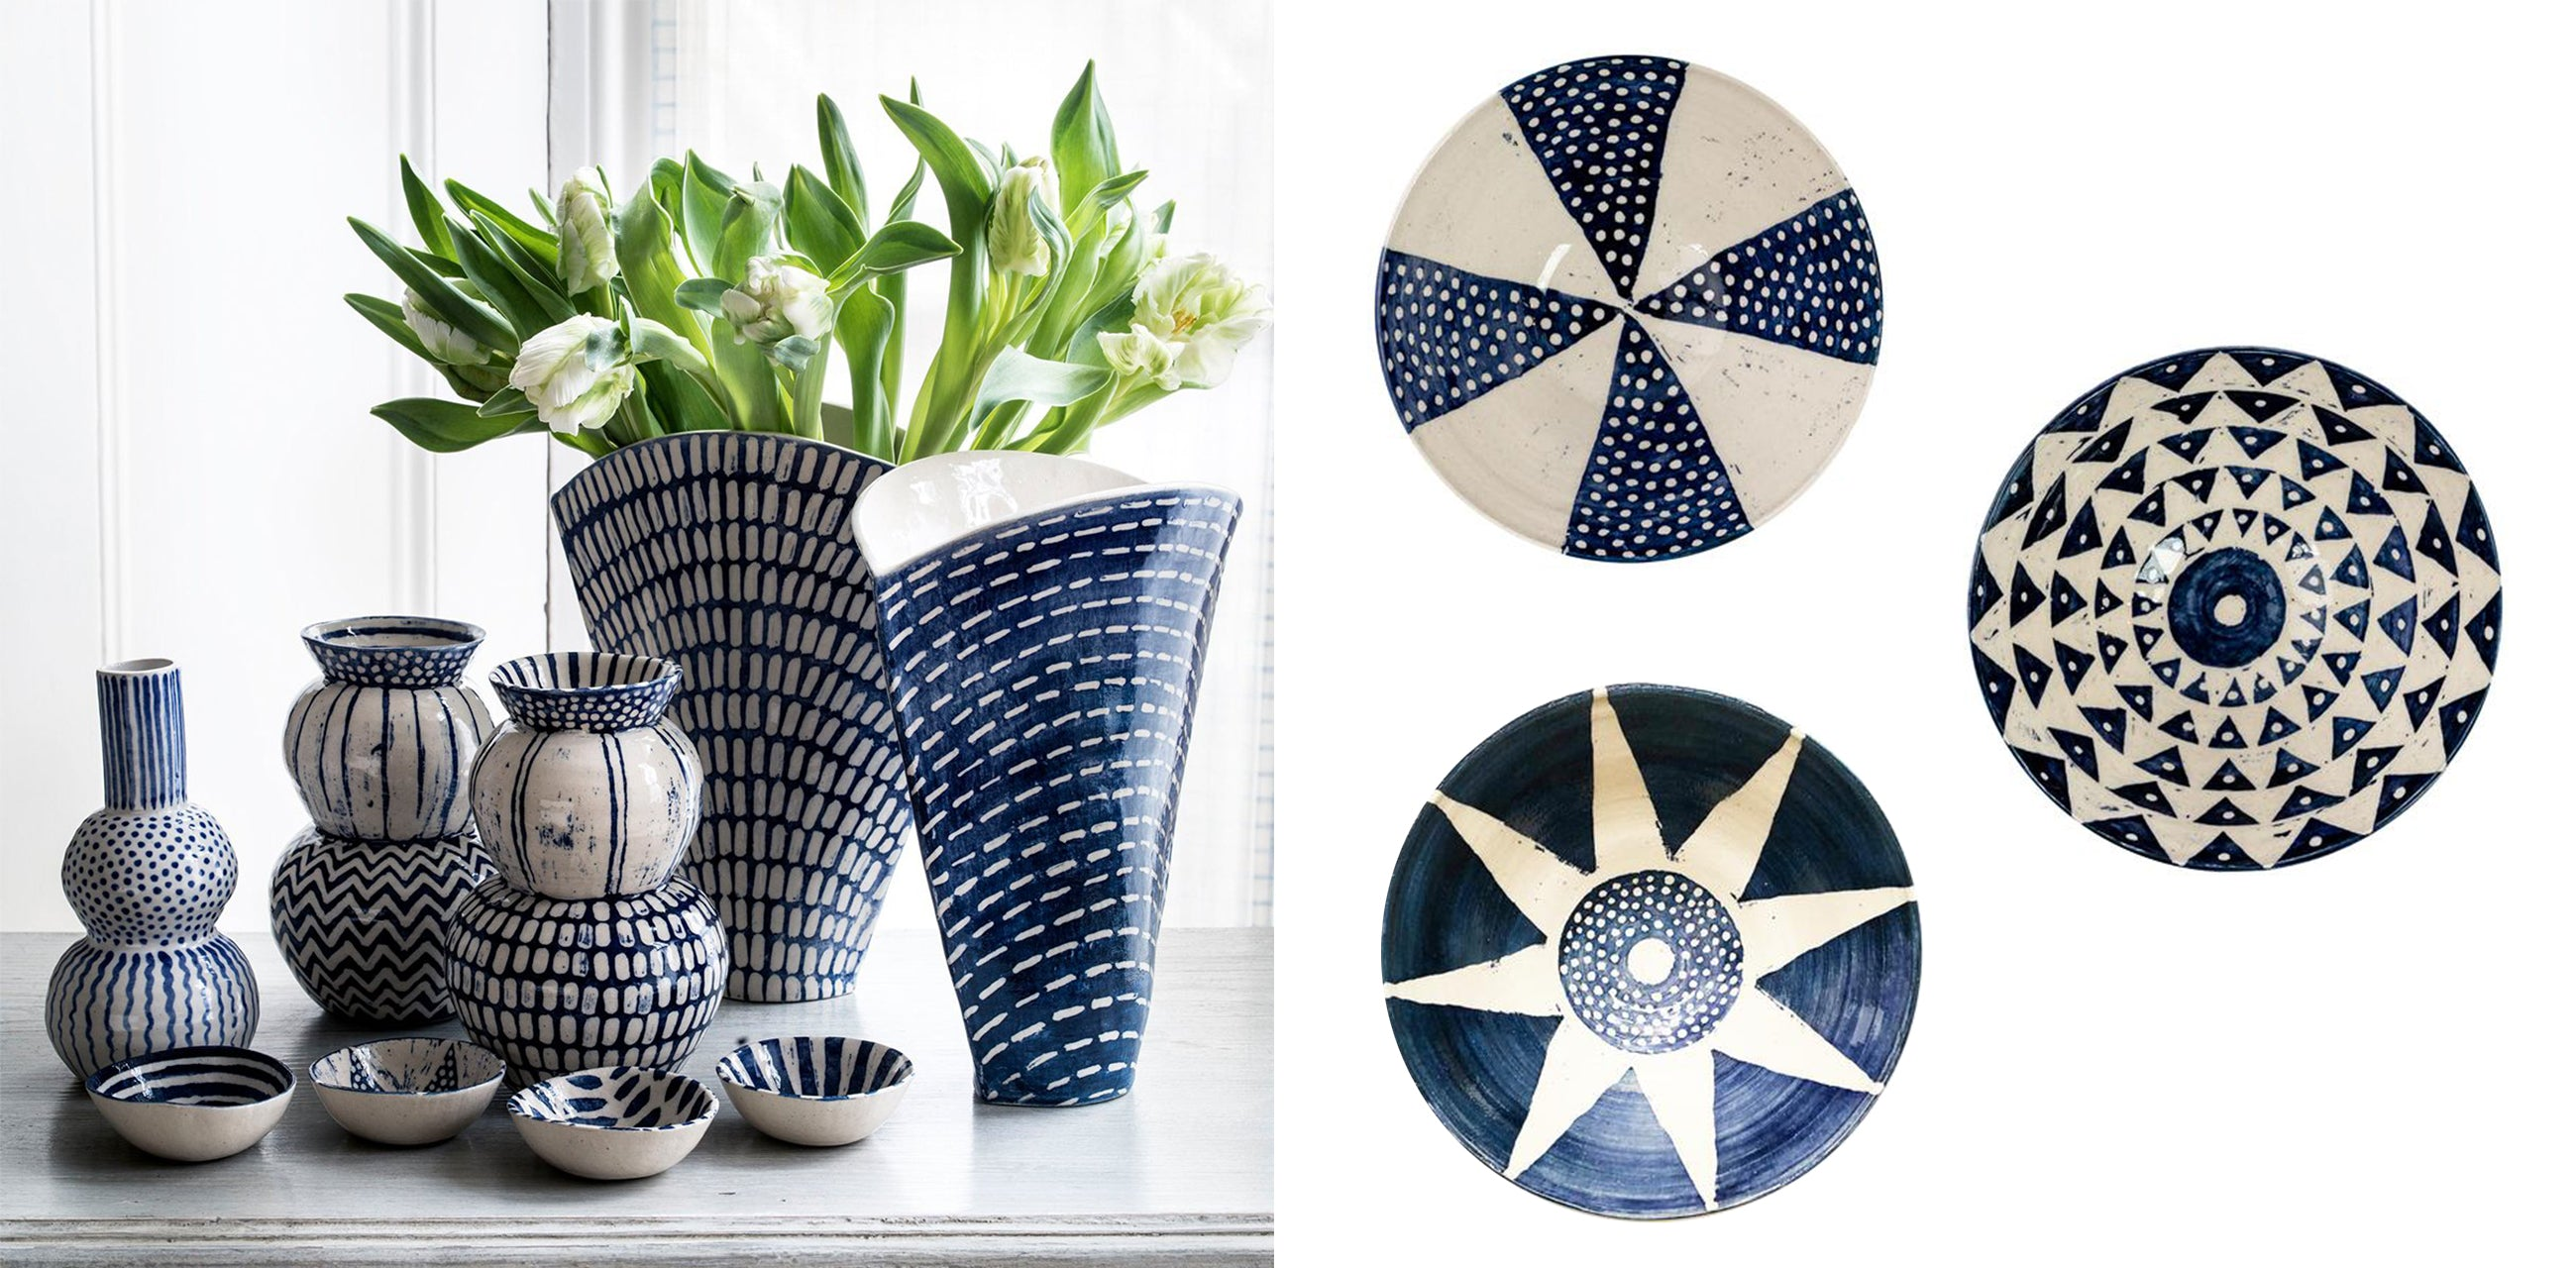 Wicklewood's hand thrown and hand painted blue and white ceramic vases and bowls